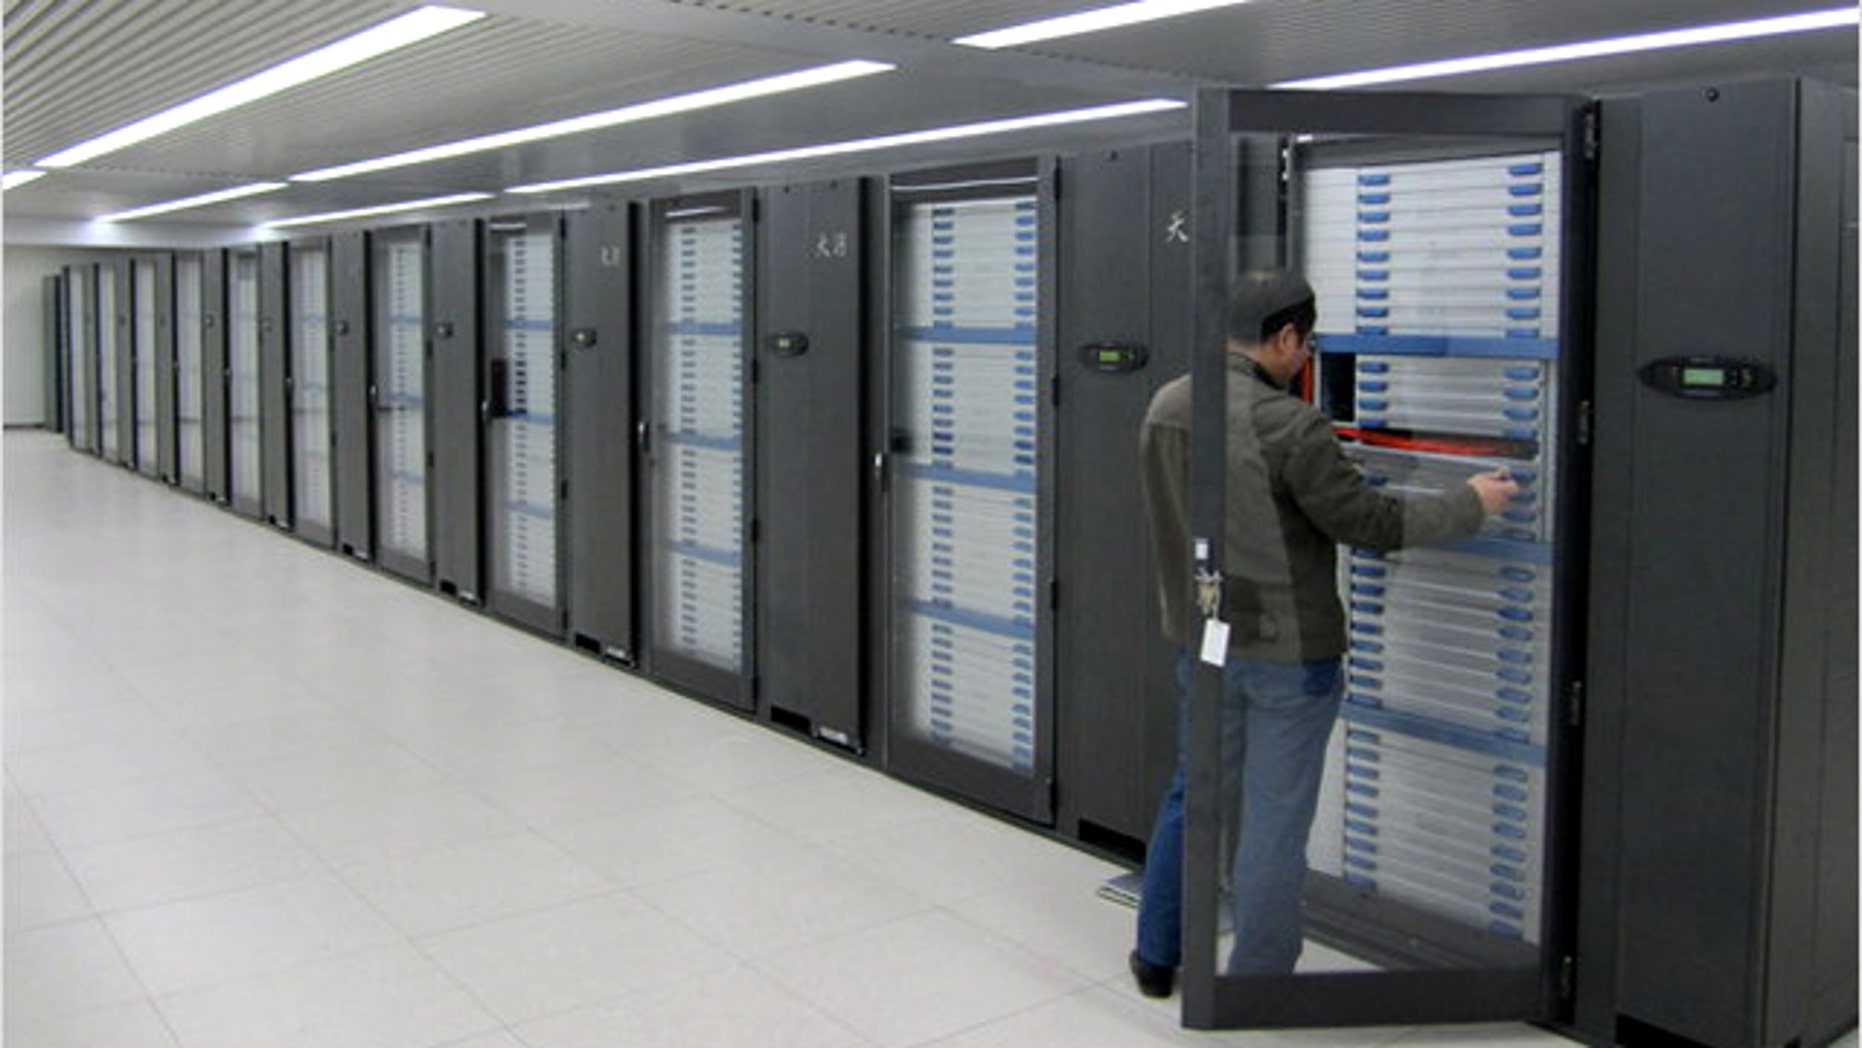 China's Tianhe-1 computer should top the list of the world's 500 fastest computers, set to be released Friday, October 29.